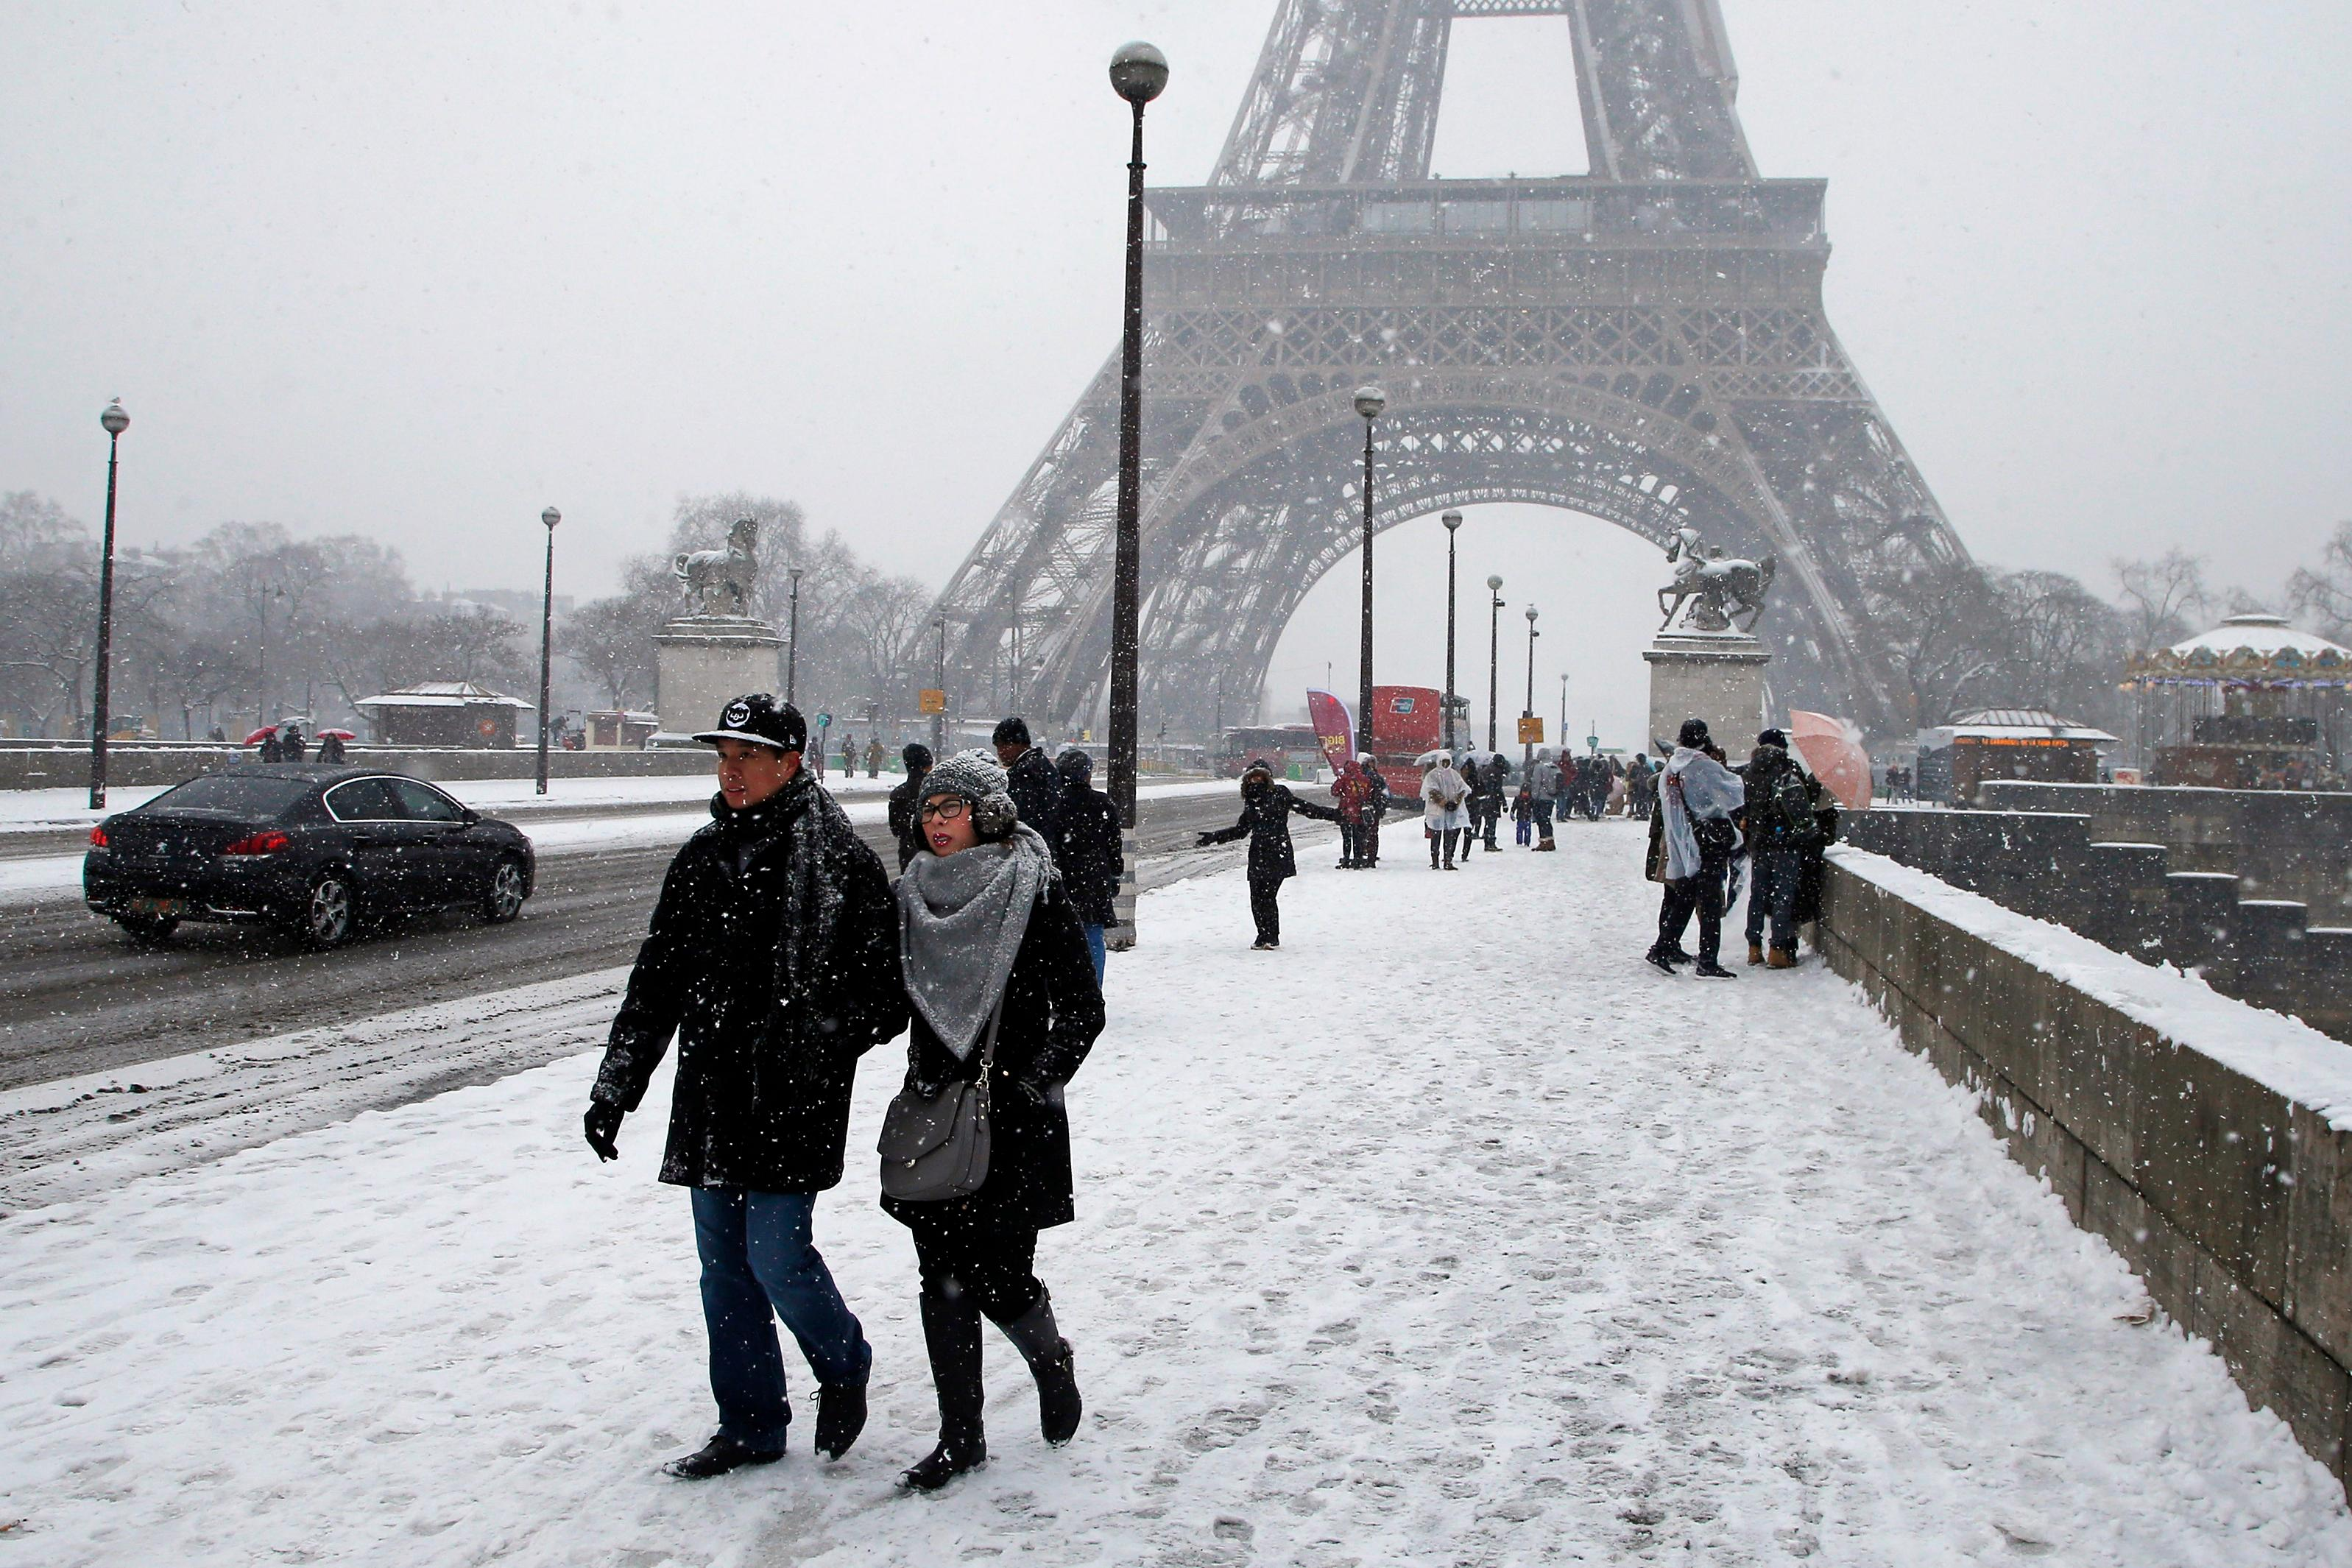 People walk on the snow-covered Iena bridge during a snowfall in Paris, France, Friday, Feb. 9, 2018. The Eiffel Tower is closed and authorities are telling drivers in the Paris region to stay home as snow and freezing rain have hit a swath of France ill-prepared for the wintry weather. (AP Photo/Michel Euler)